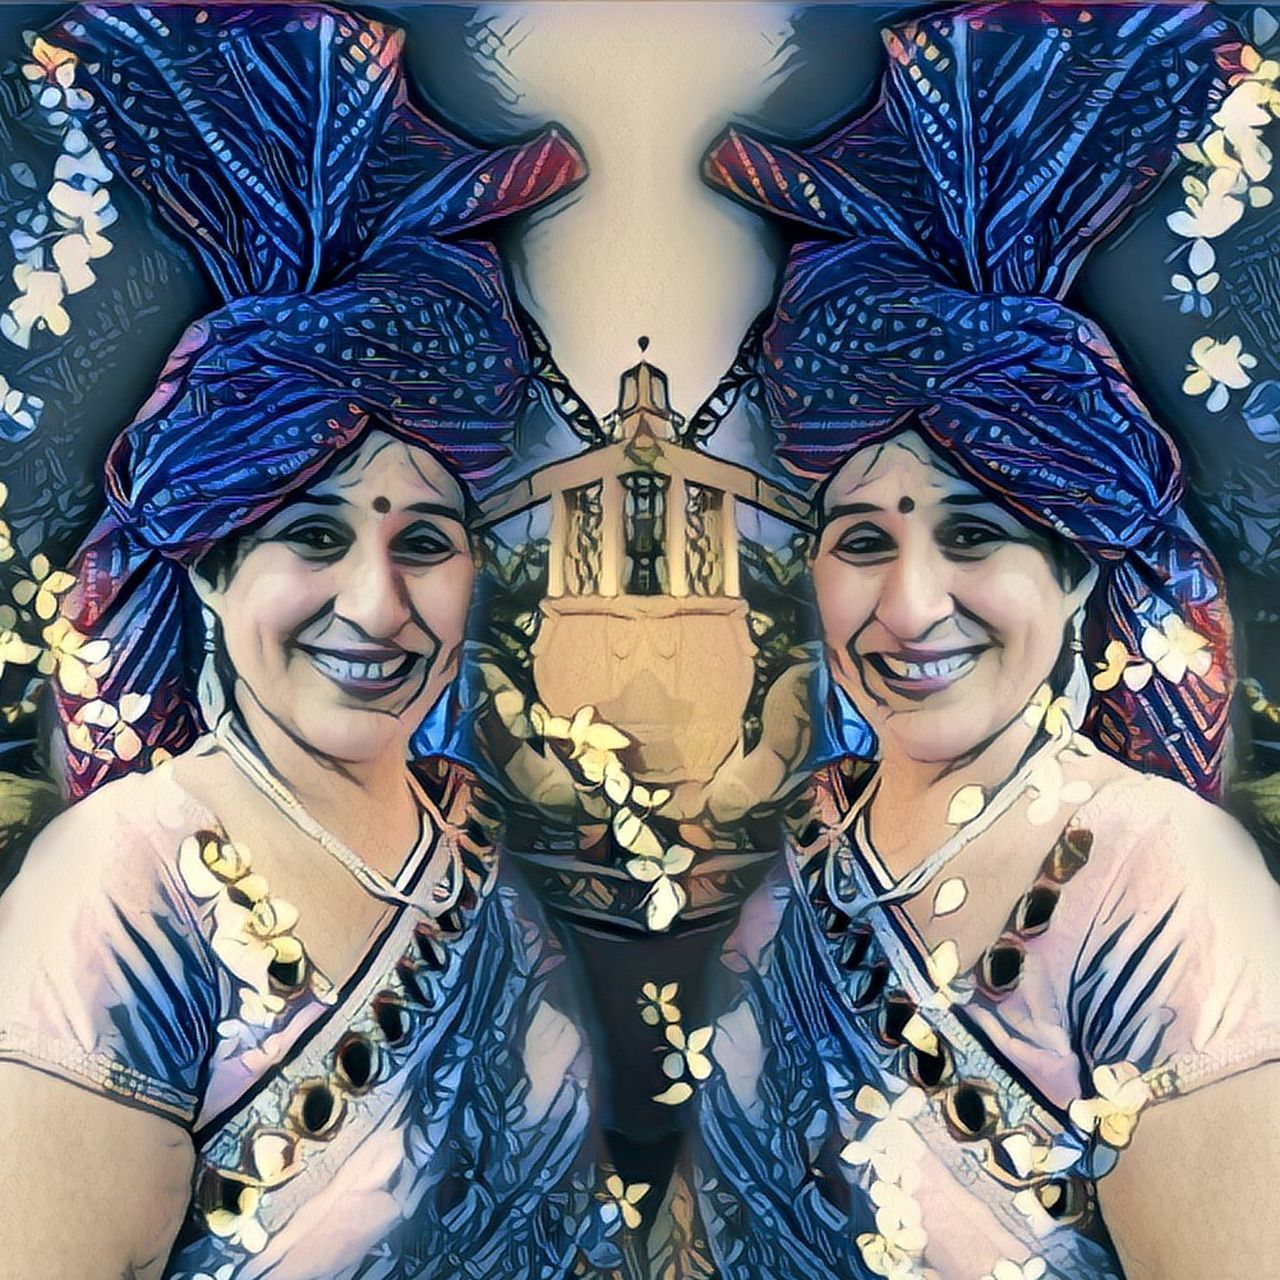 Looking At Camera Adults Only Portrait Only Women Arts Culture And Entertainment Front View Adult Young Women People Headshot Human Body Part Young Adult Celebration Togetherness Happiness Day Party - Social Event Headdress Indoors  Headwear EyeEm Best Shots EyeEmNewHere BYOPaper! Art Is Everywhere EyeEm Gallery